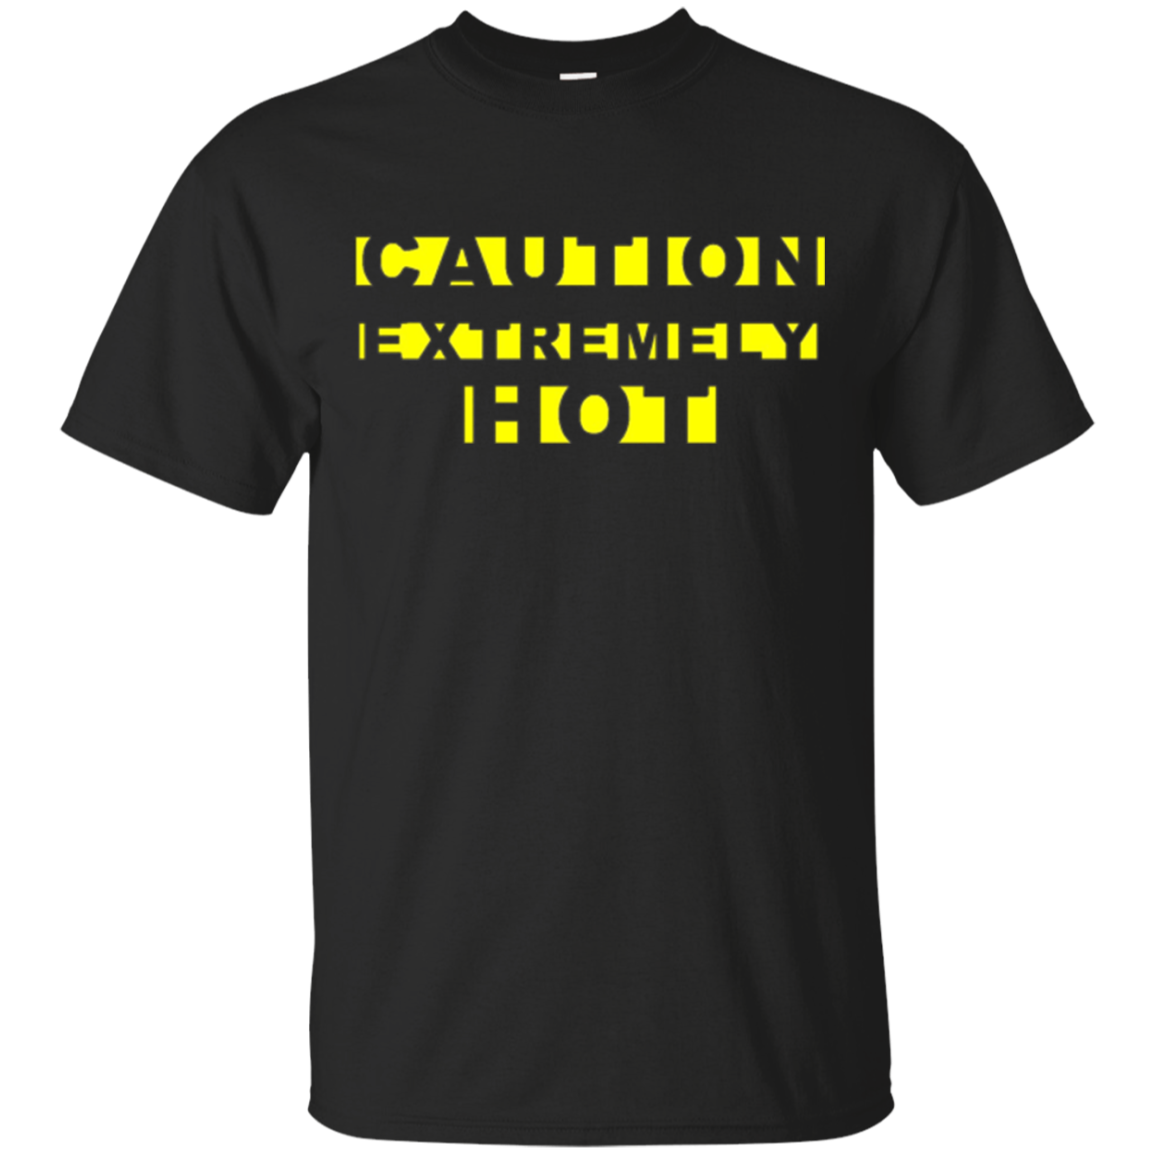 CAUTION EXTREMELY HOT Funny Crime Scene Tape Yellow Text Tee